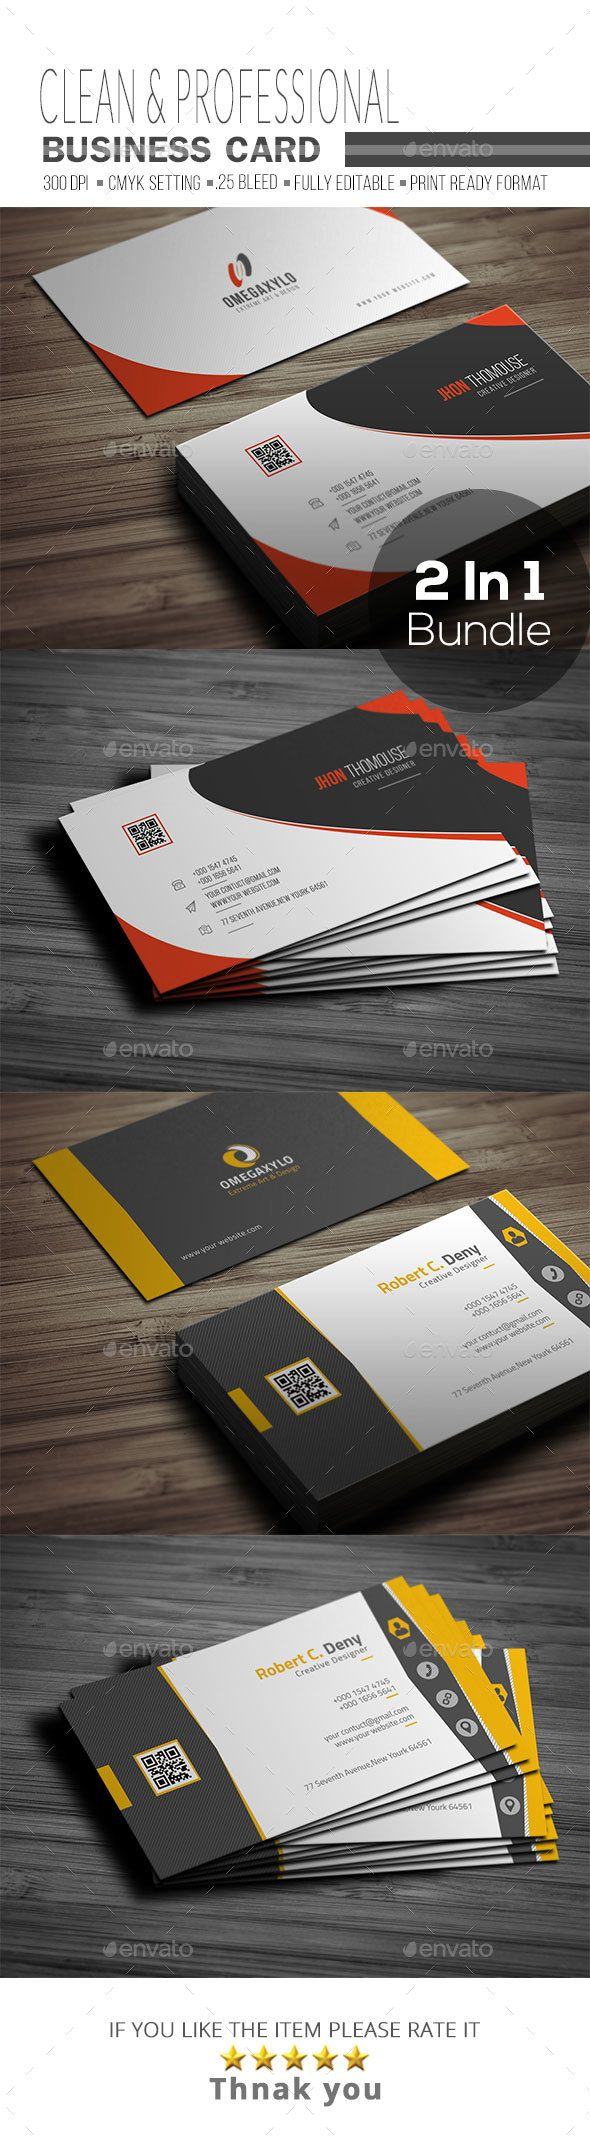 Business card bundle 2 in 1 pinterest cartes de visita visita business card bundle 2 in 1 corporate business cards download here reheart